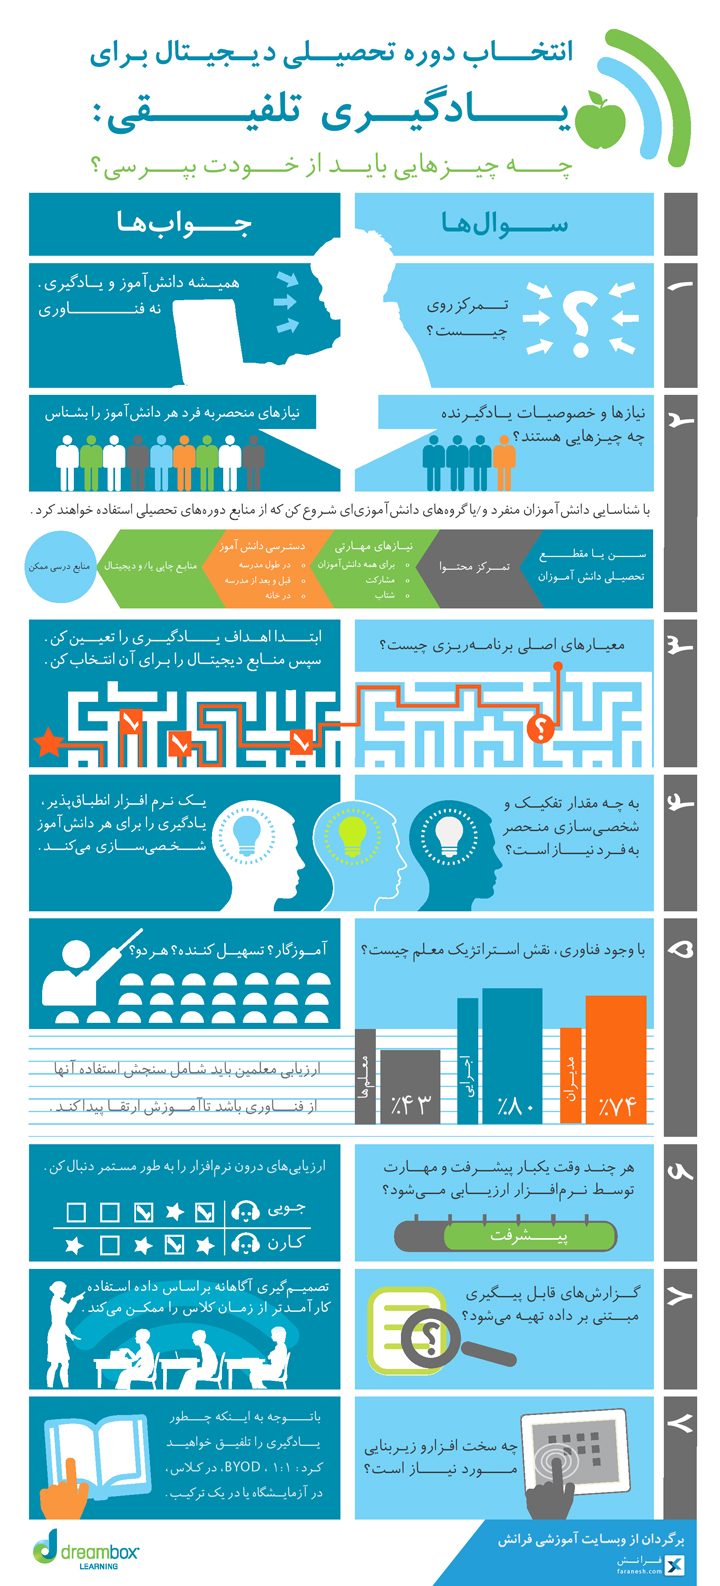 blended-learning-inphographic